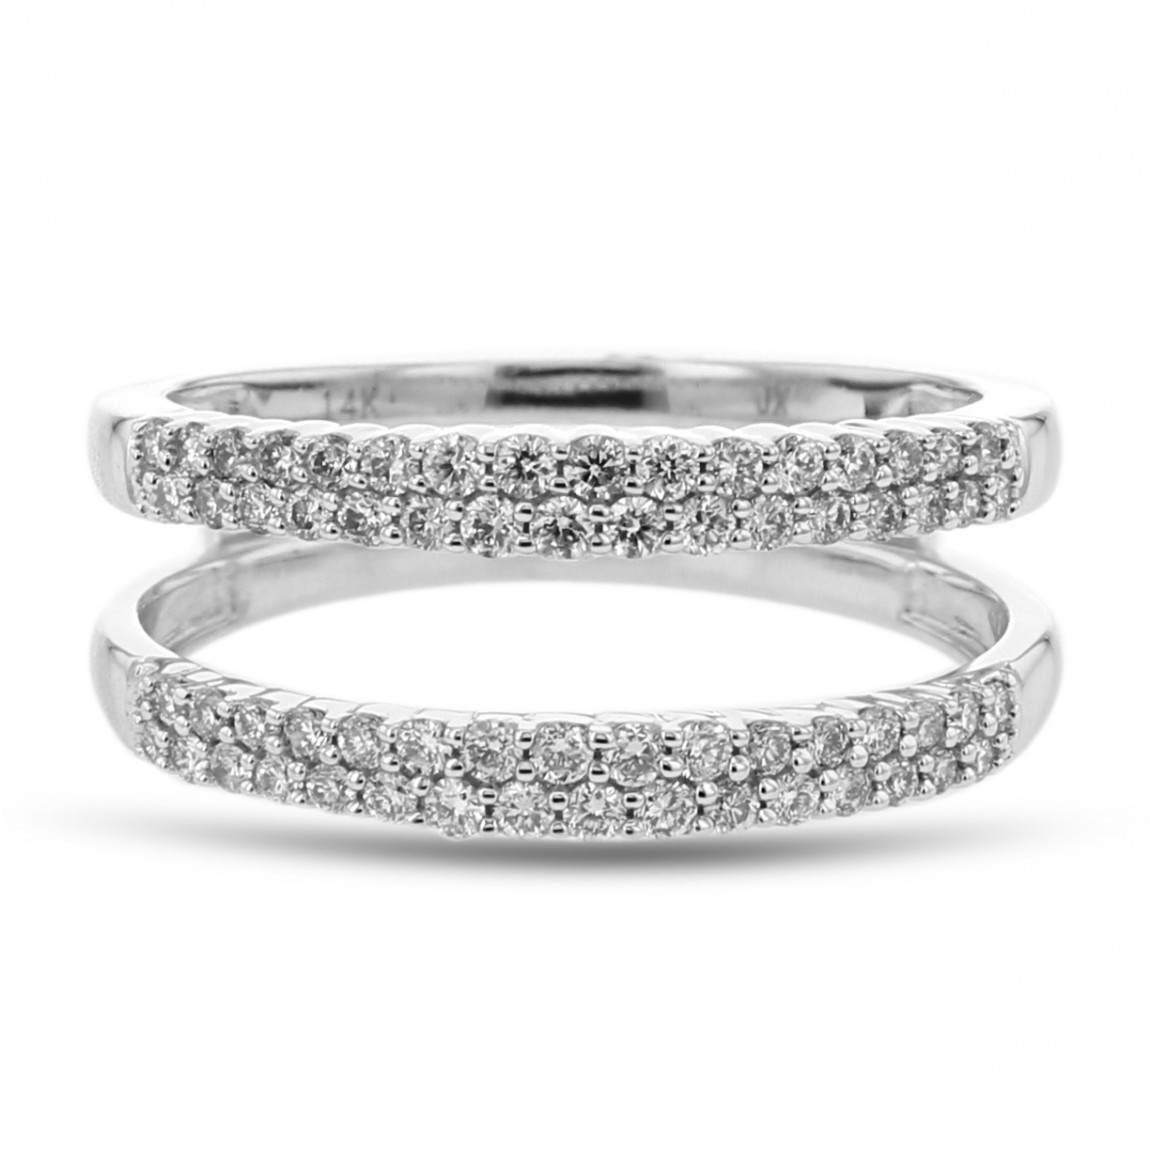 Diamond Cradle Wedding Band, Ring Enhancer, Pavé Lines, 14K White Gold,   (View 9 of 25)